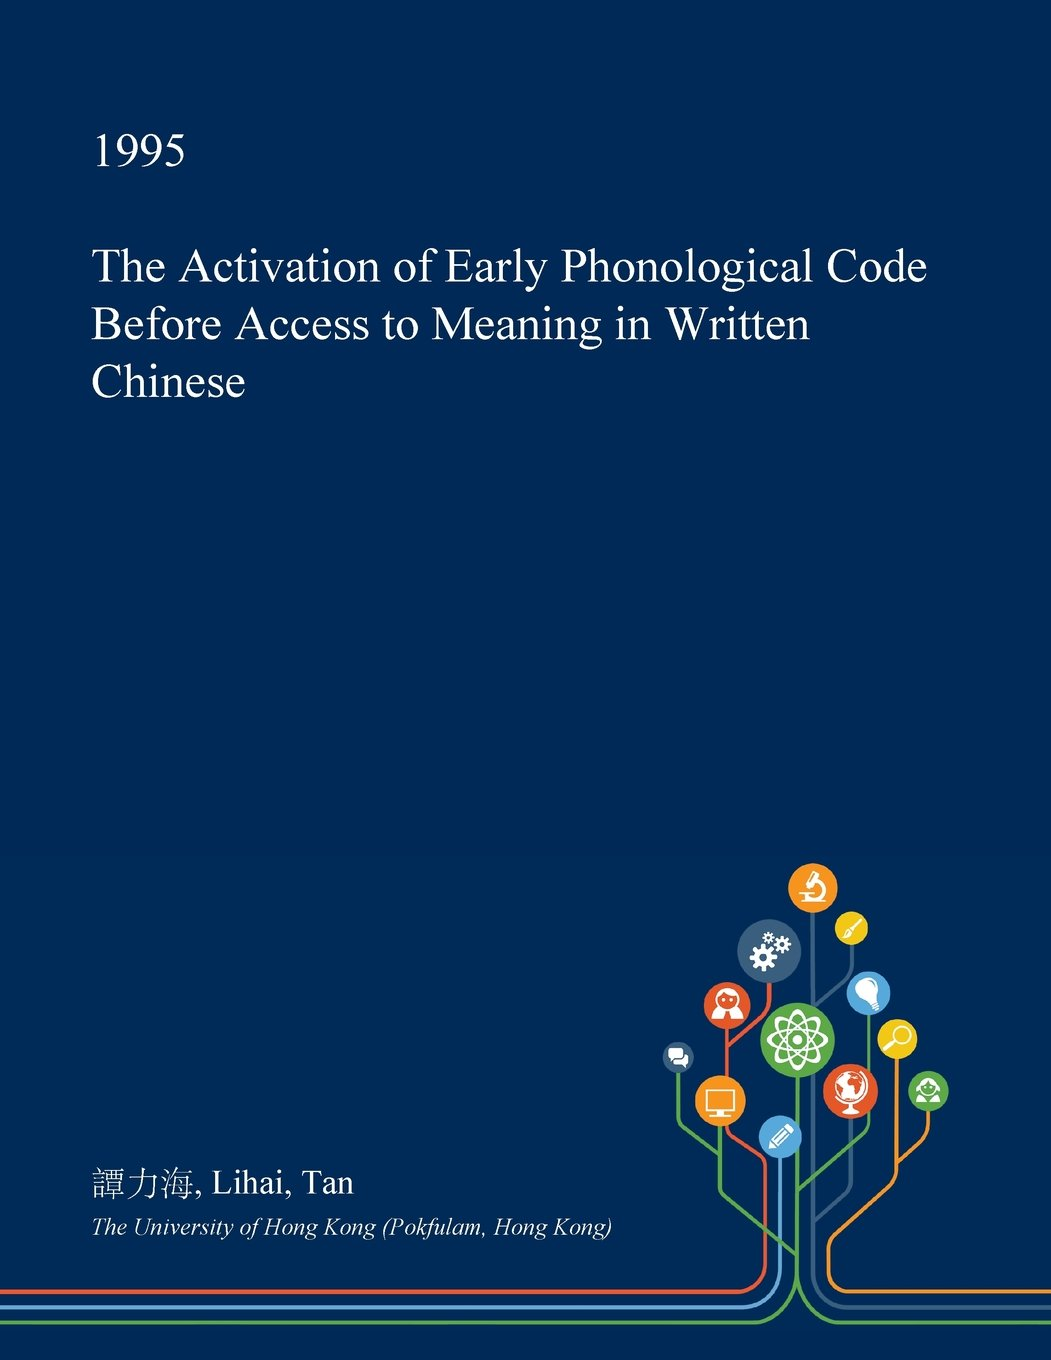 The Activation of Early Phonological Code Before Access to